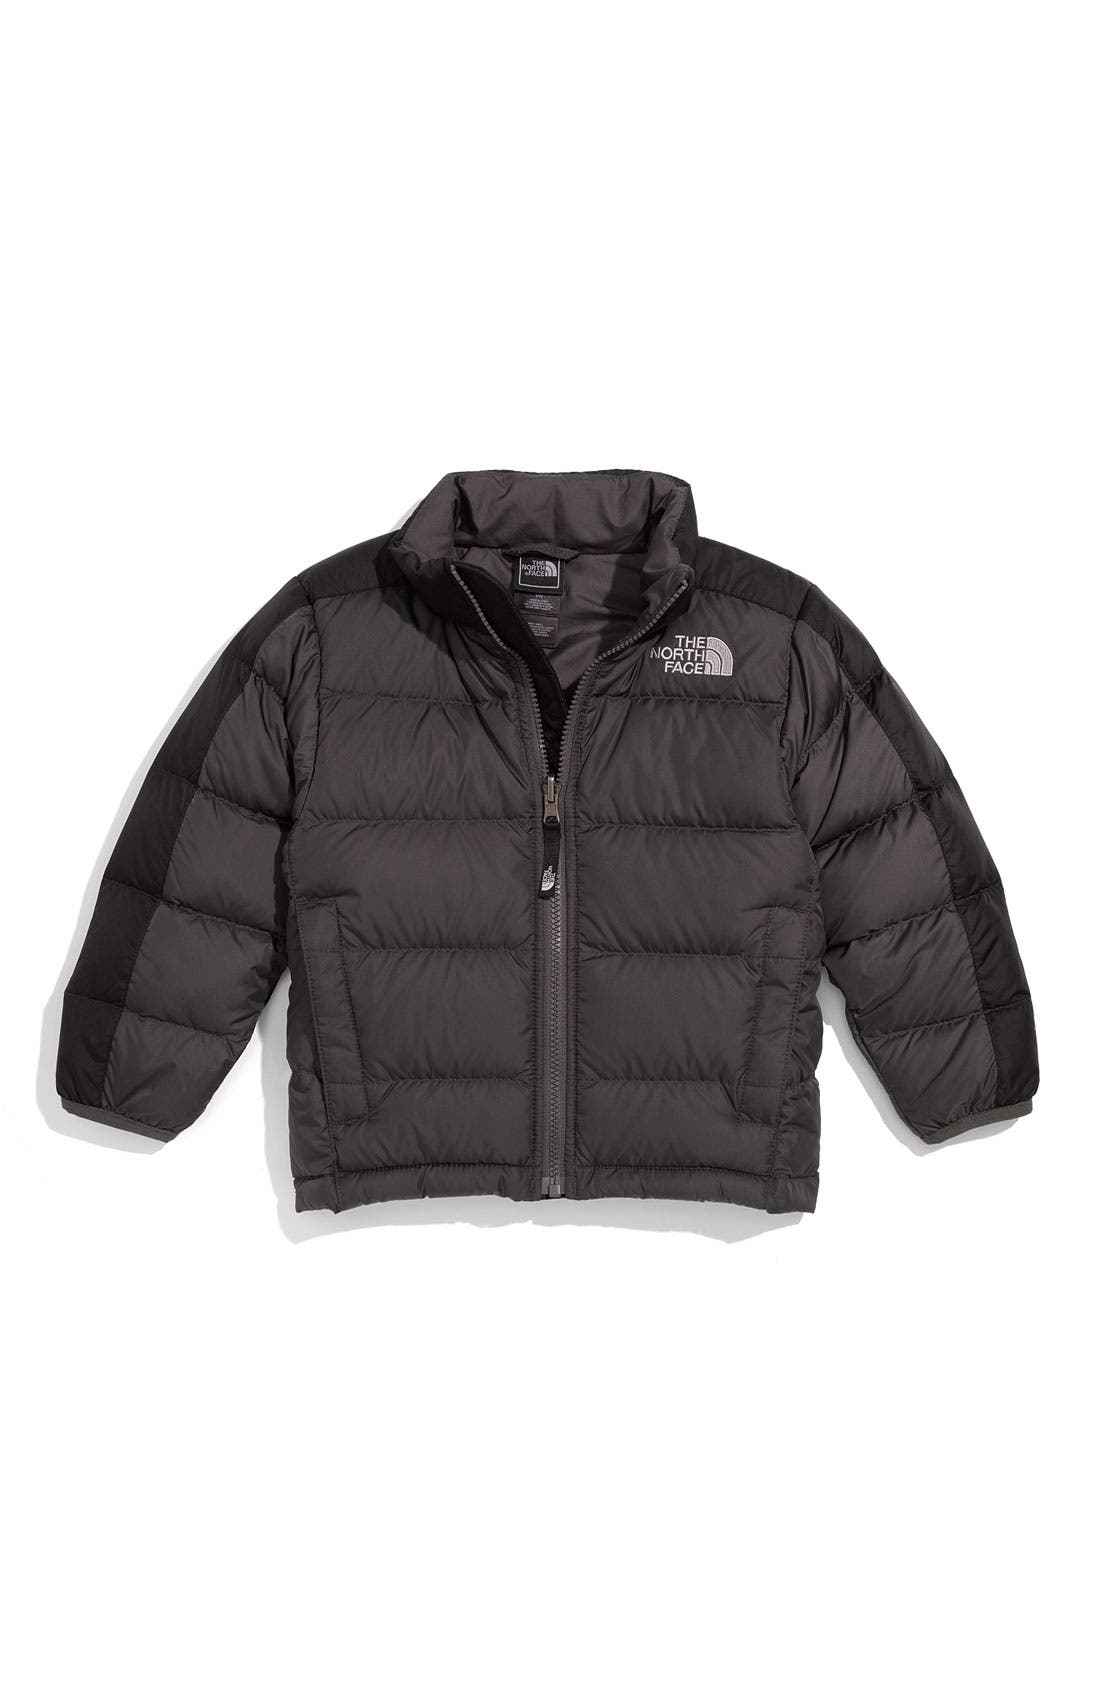 Alternate Image 1 Selected - The North Face 'Aconcagua' Jacket (Little Boys)